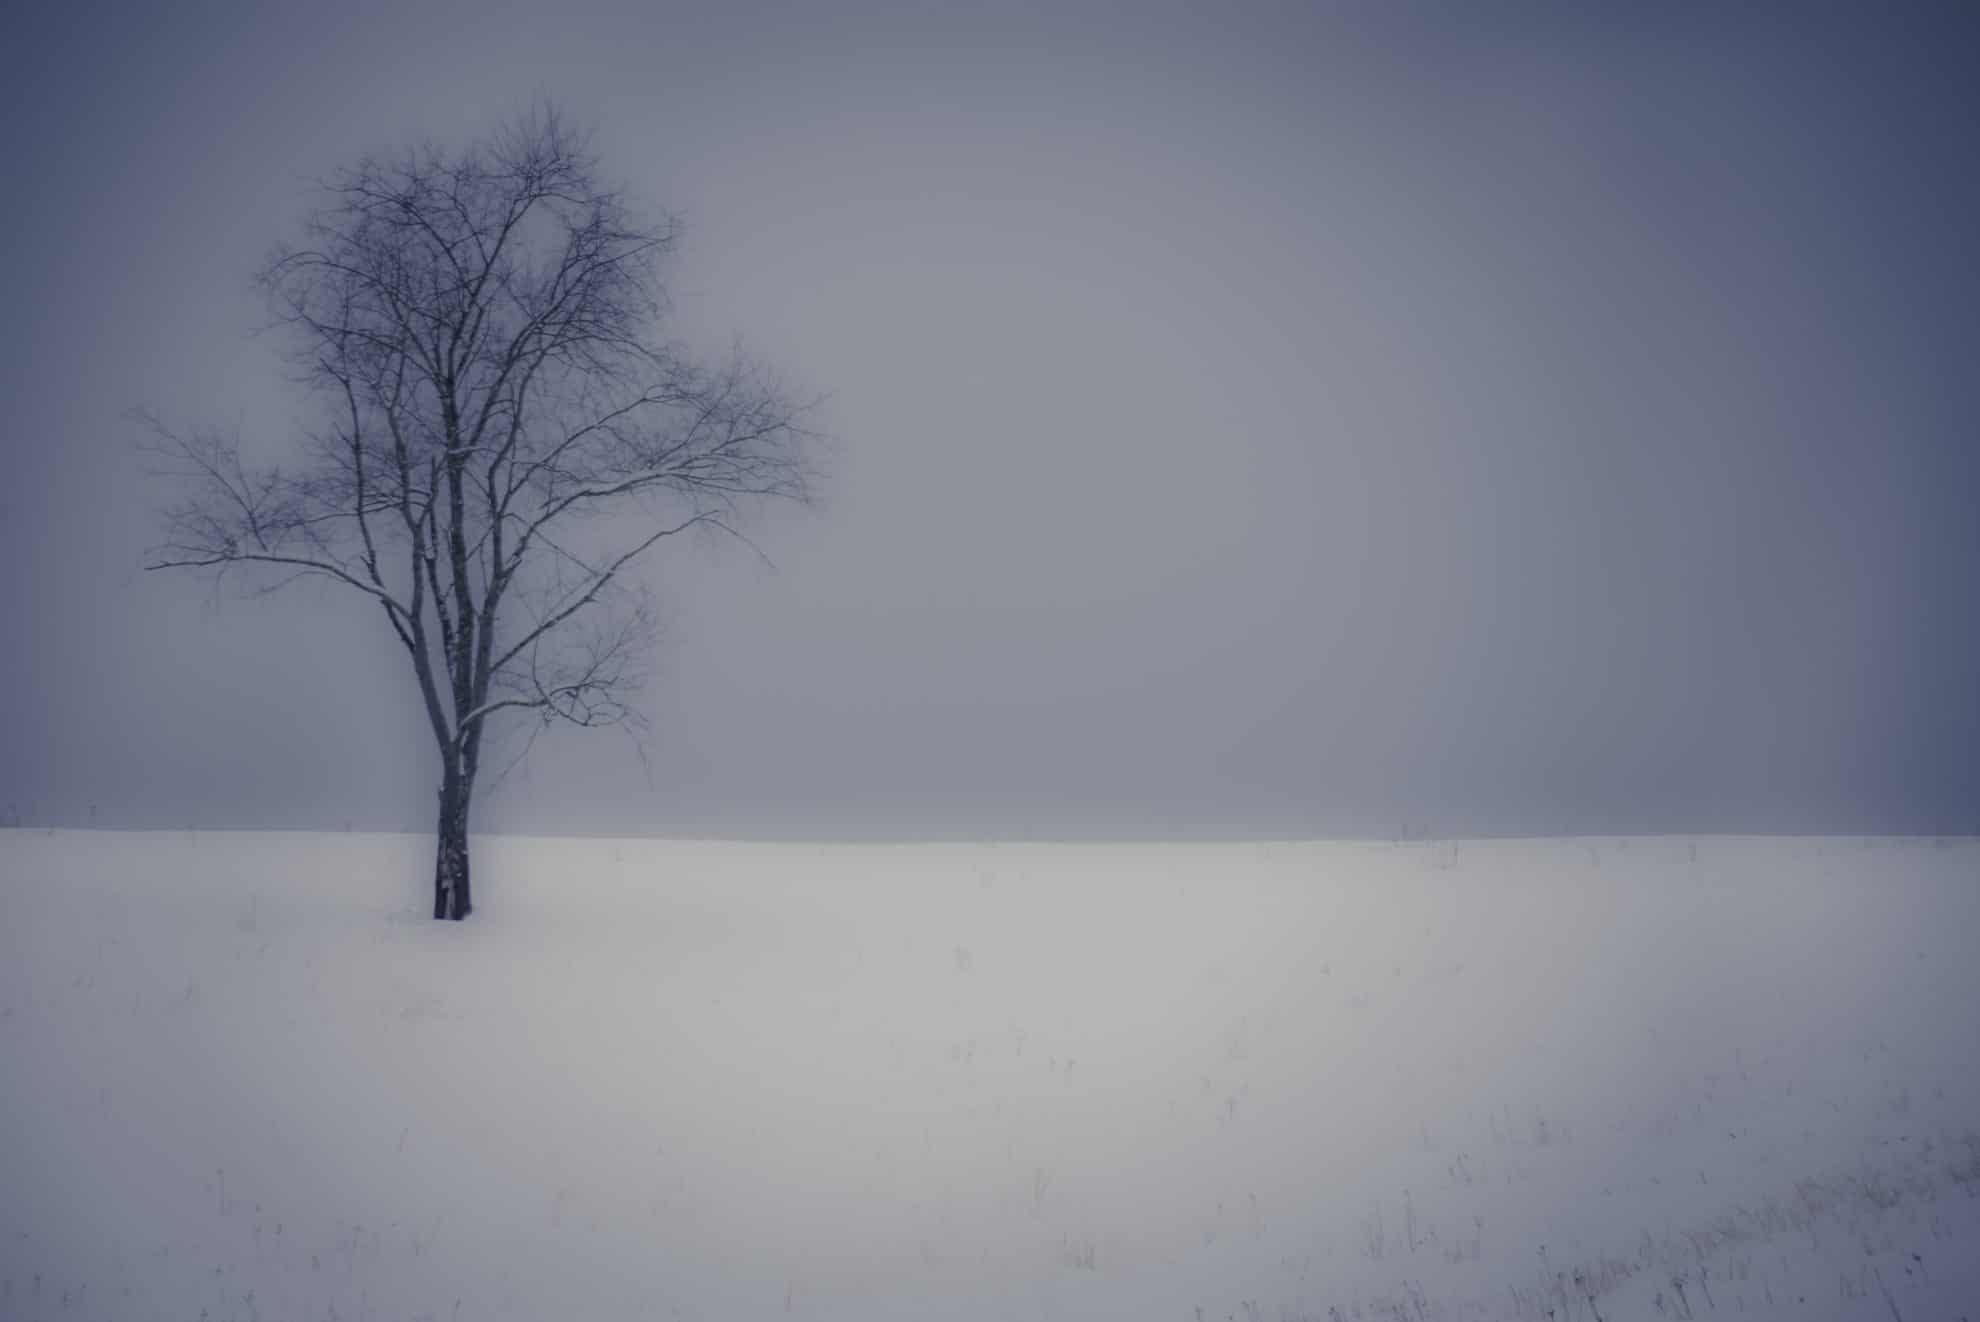 snowy landscape print of lone bare tree in field of snow